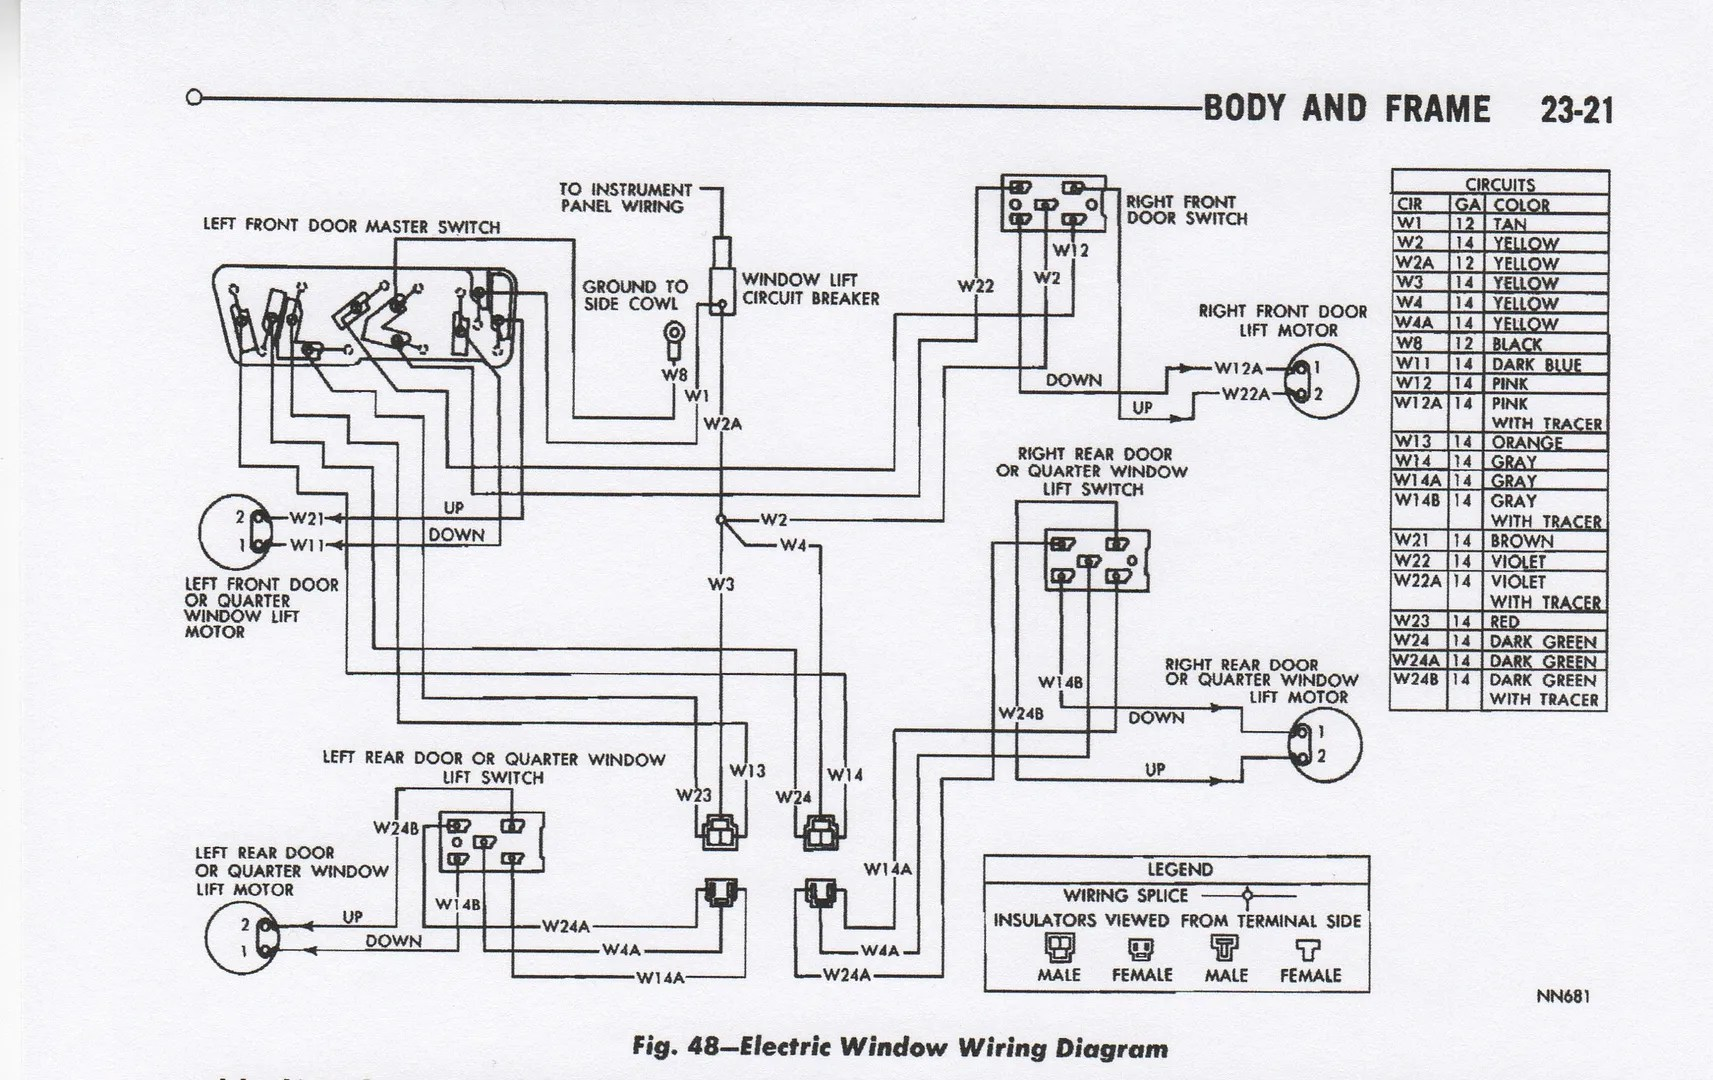 1965 Plymouth Valiant Wiring Diagram Electronic Schematics collections